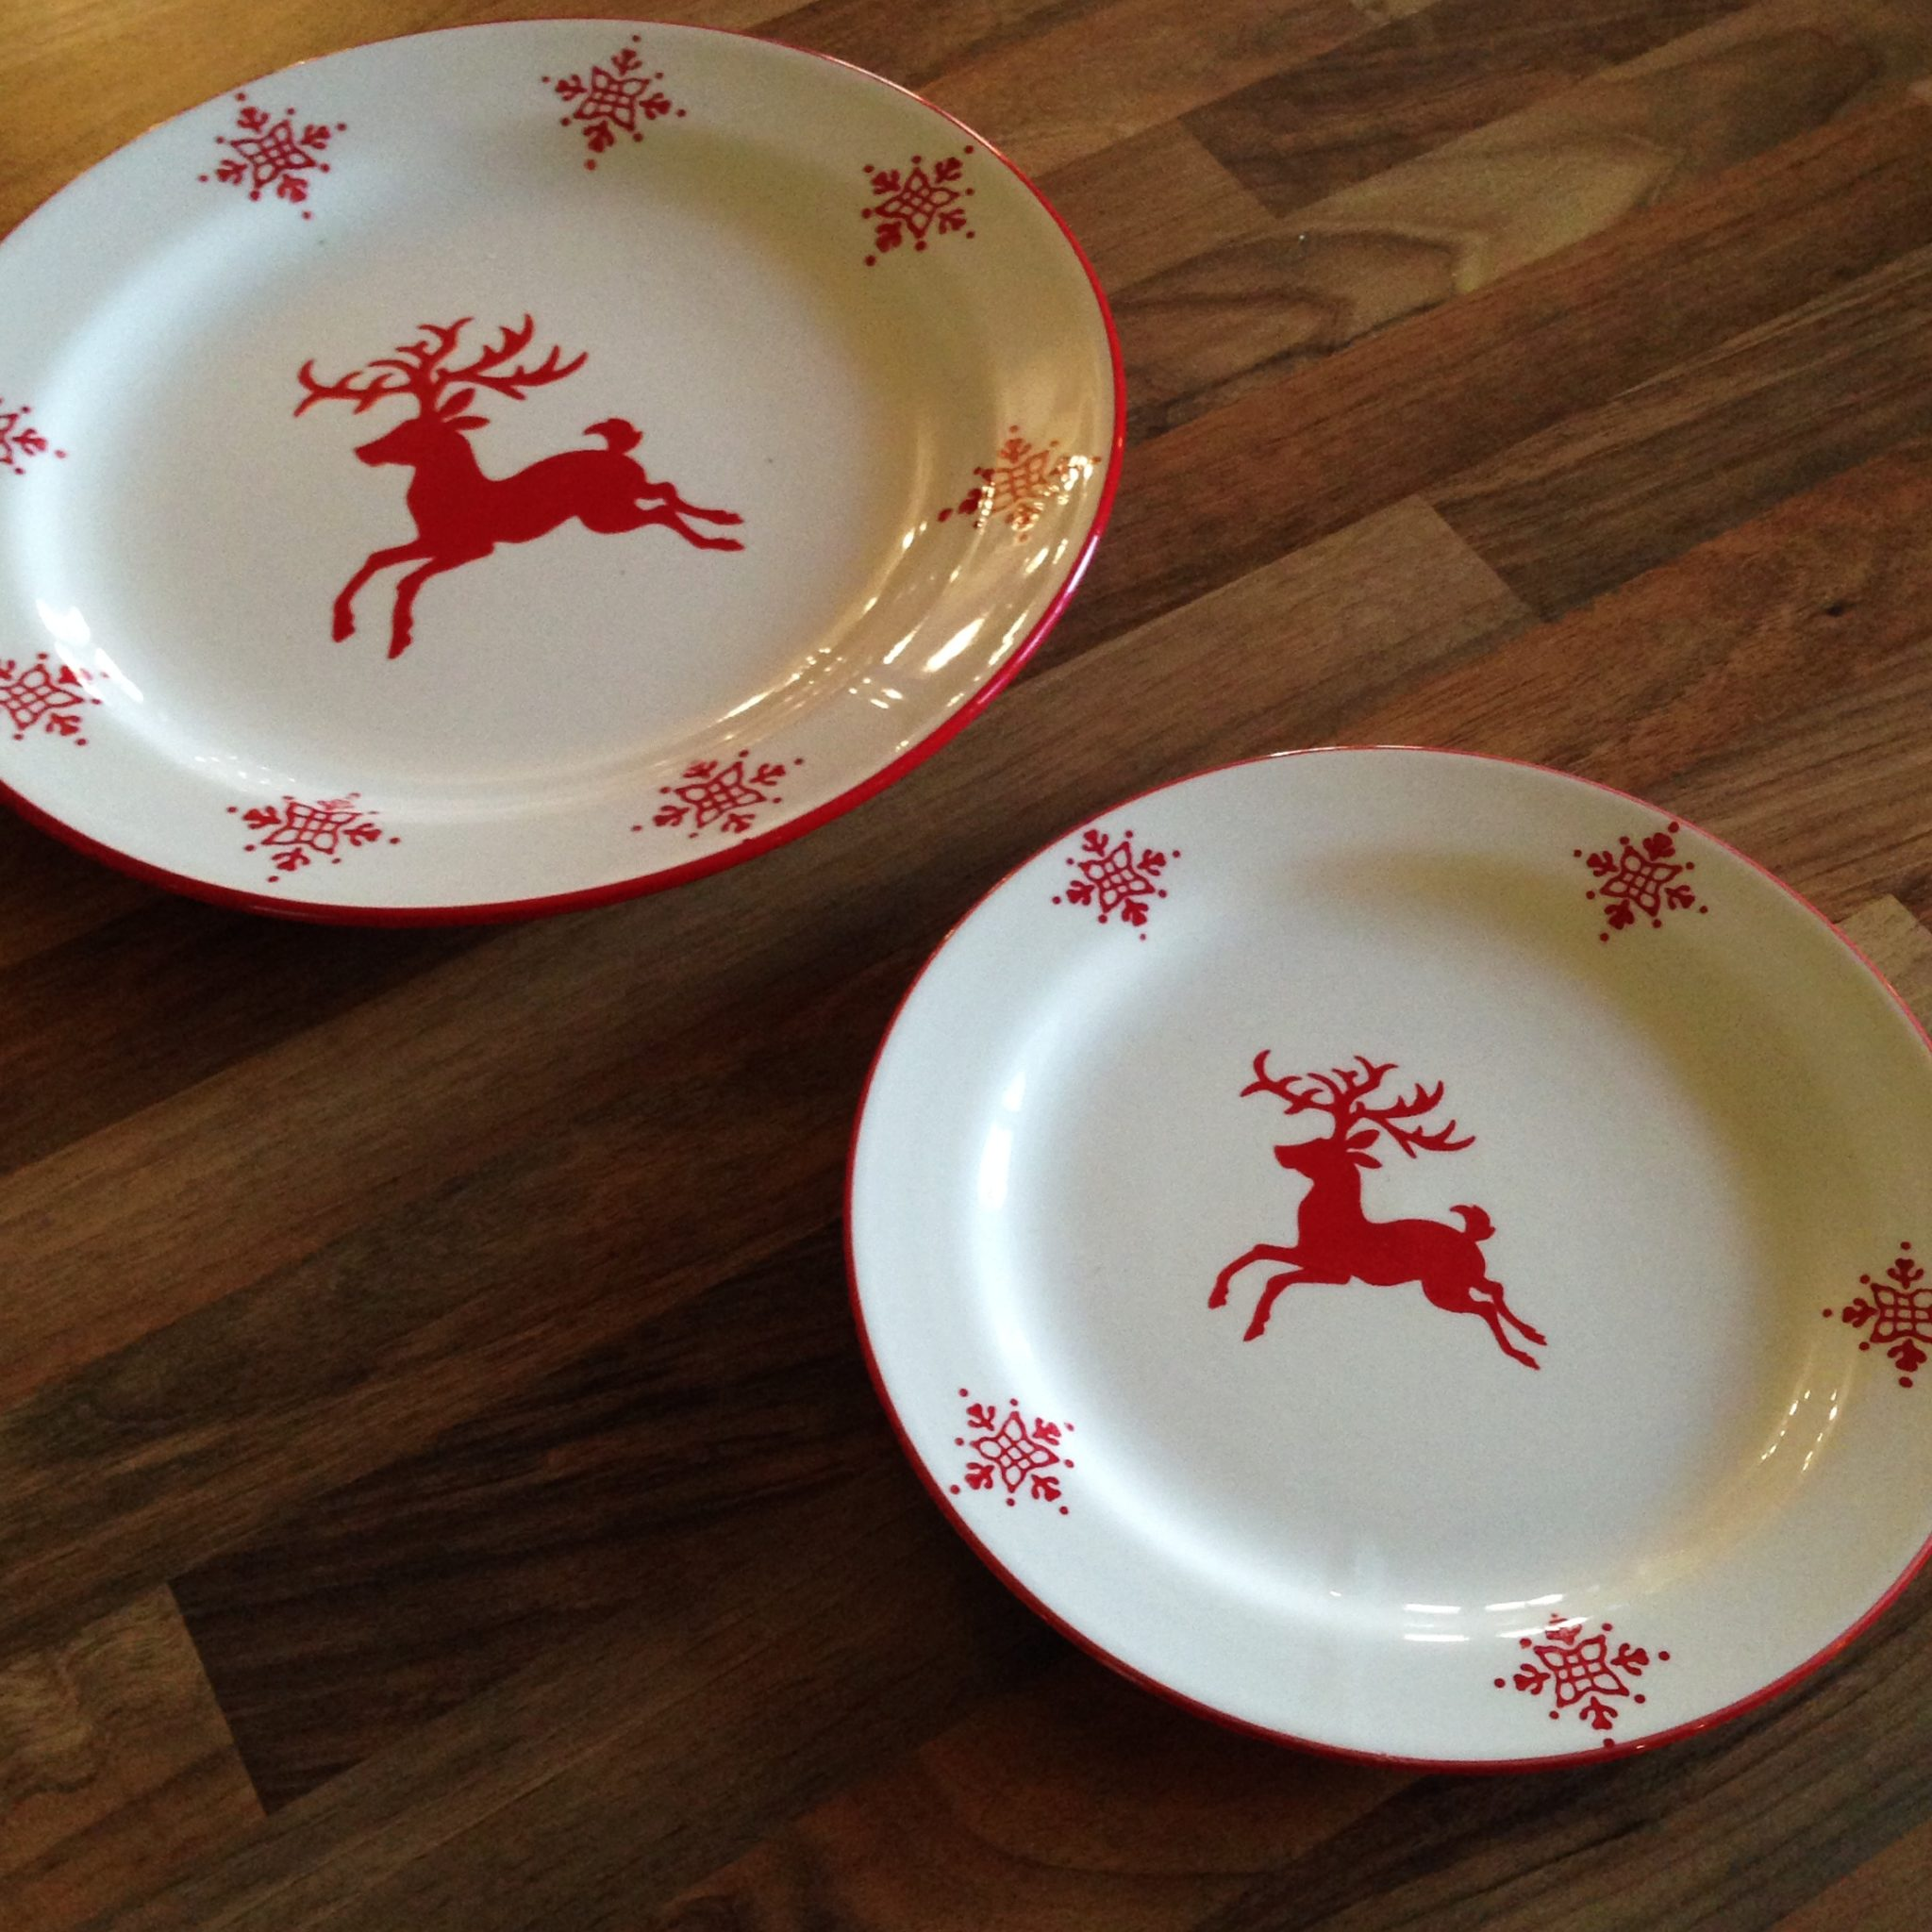 Christmas Plates U2026 Is It Possible I May Have Too Many